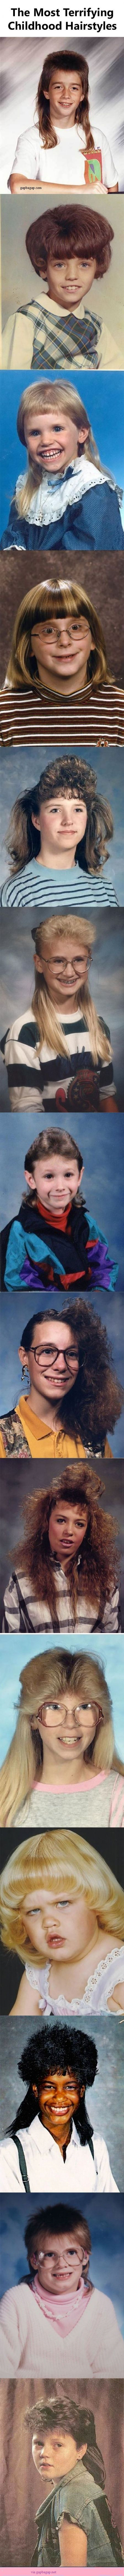 Funny Pictures: The Most Terrifying Childhood Hairstyles